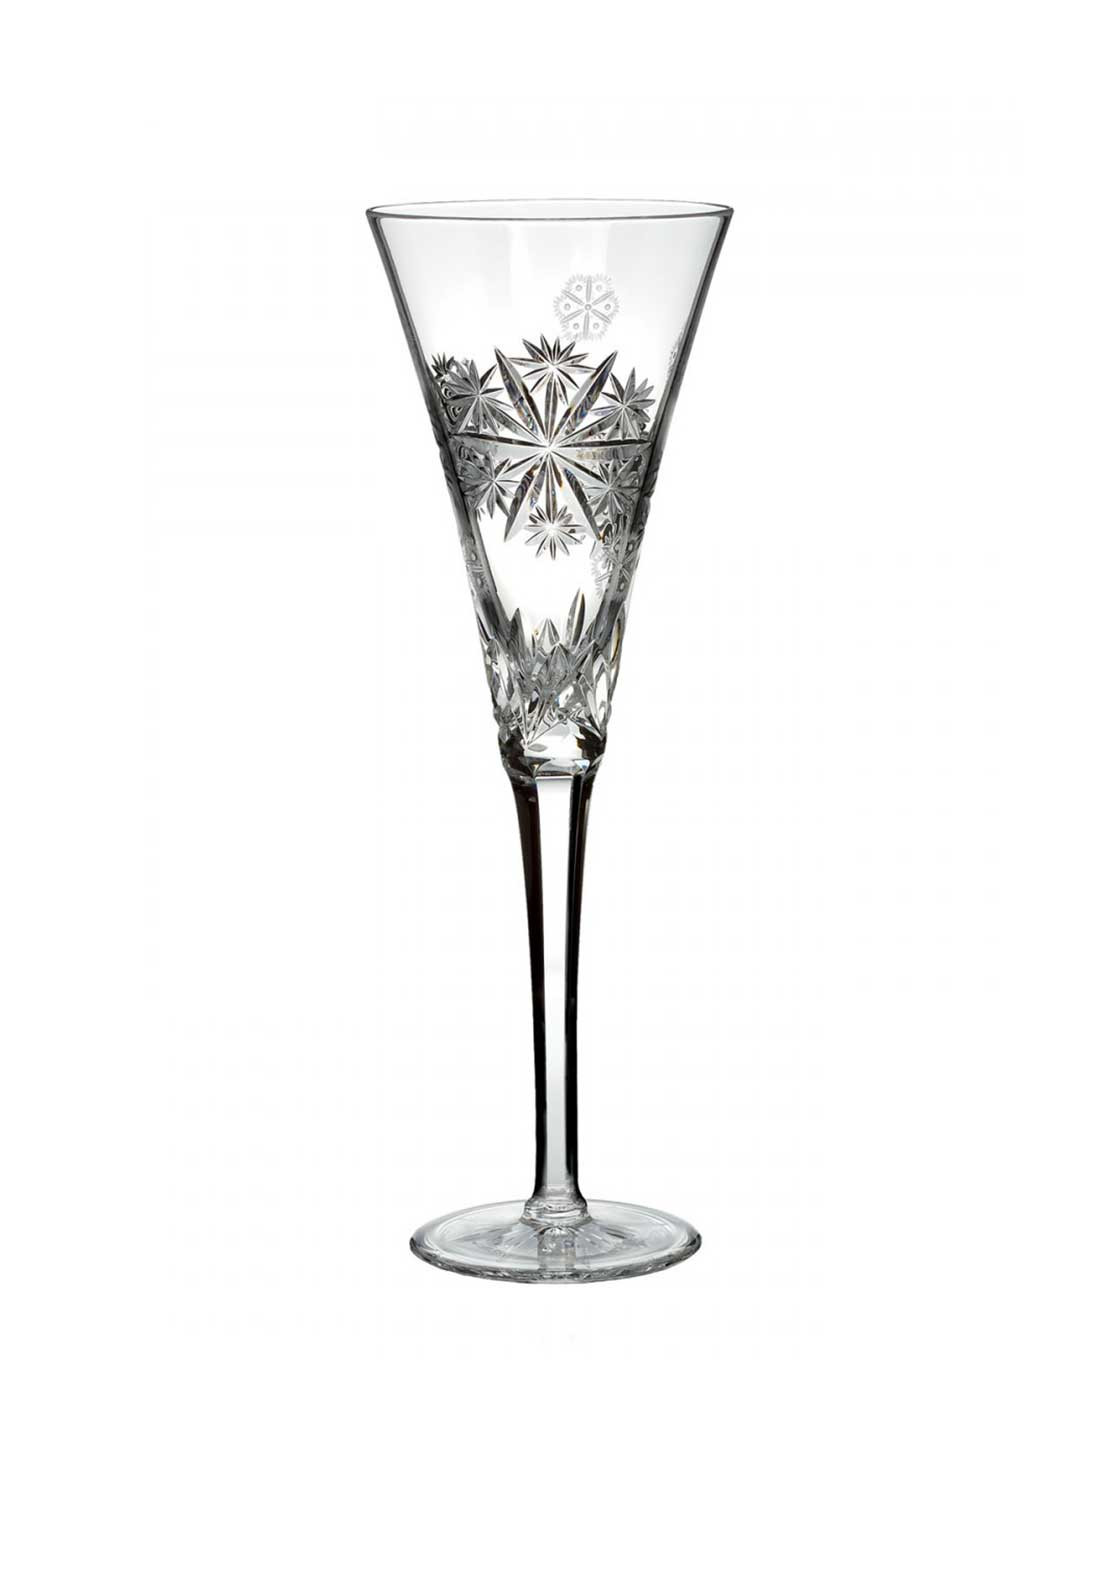 Waterford Crystal Snowflake Wishes Serenity Flute